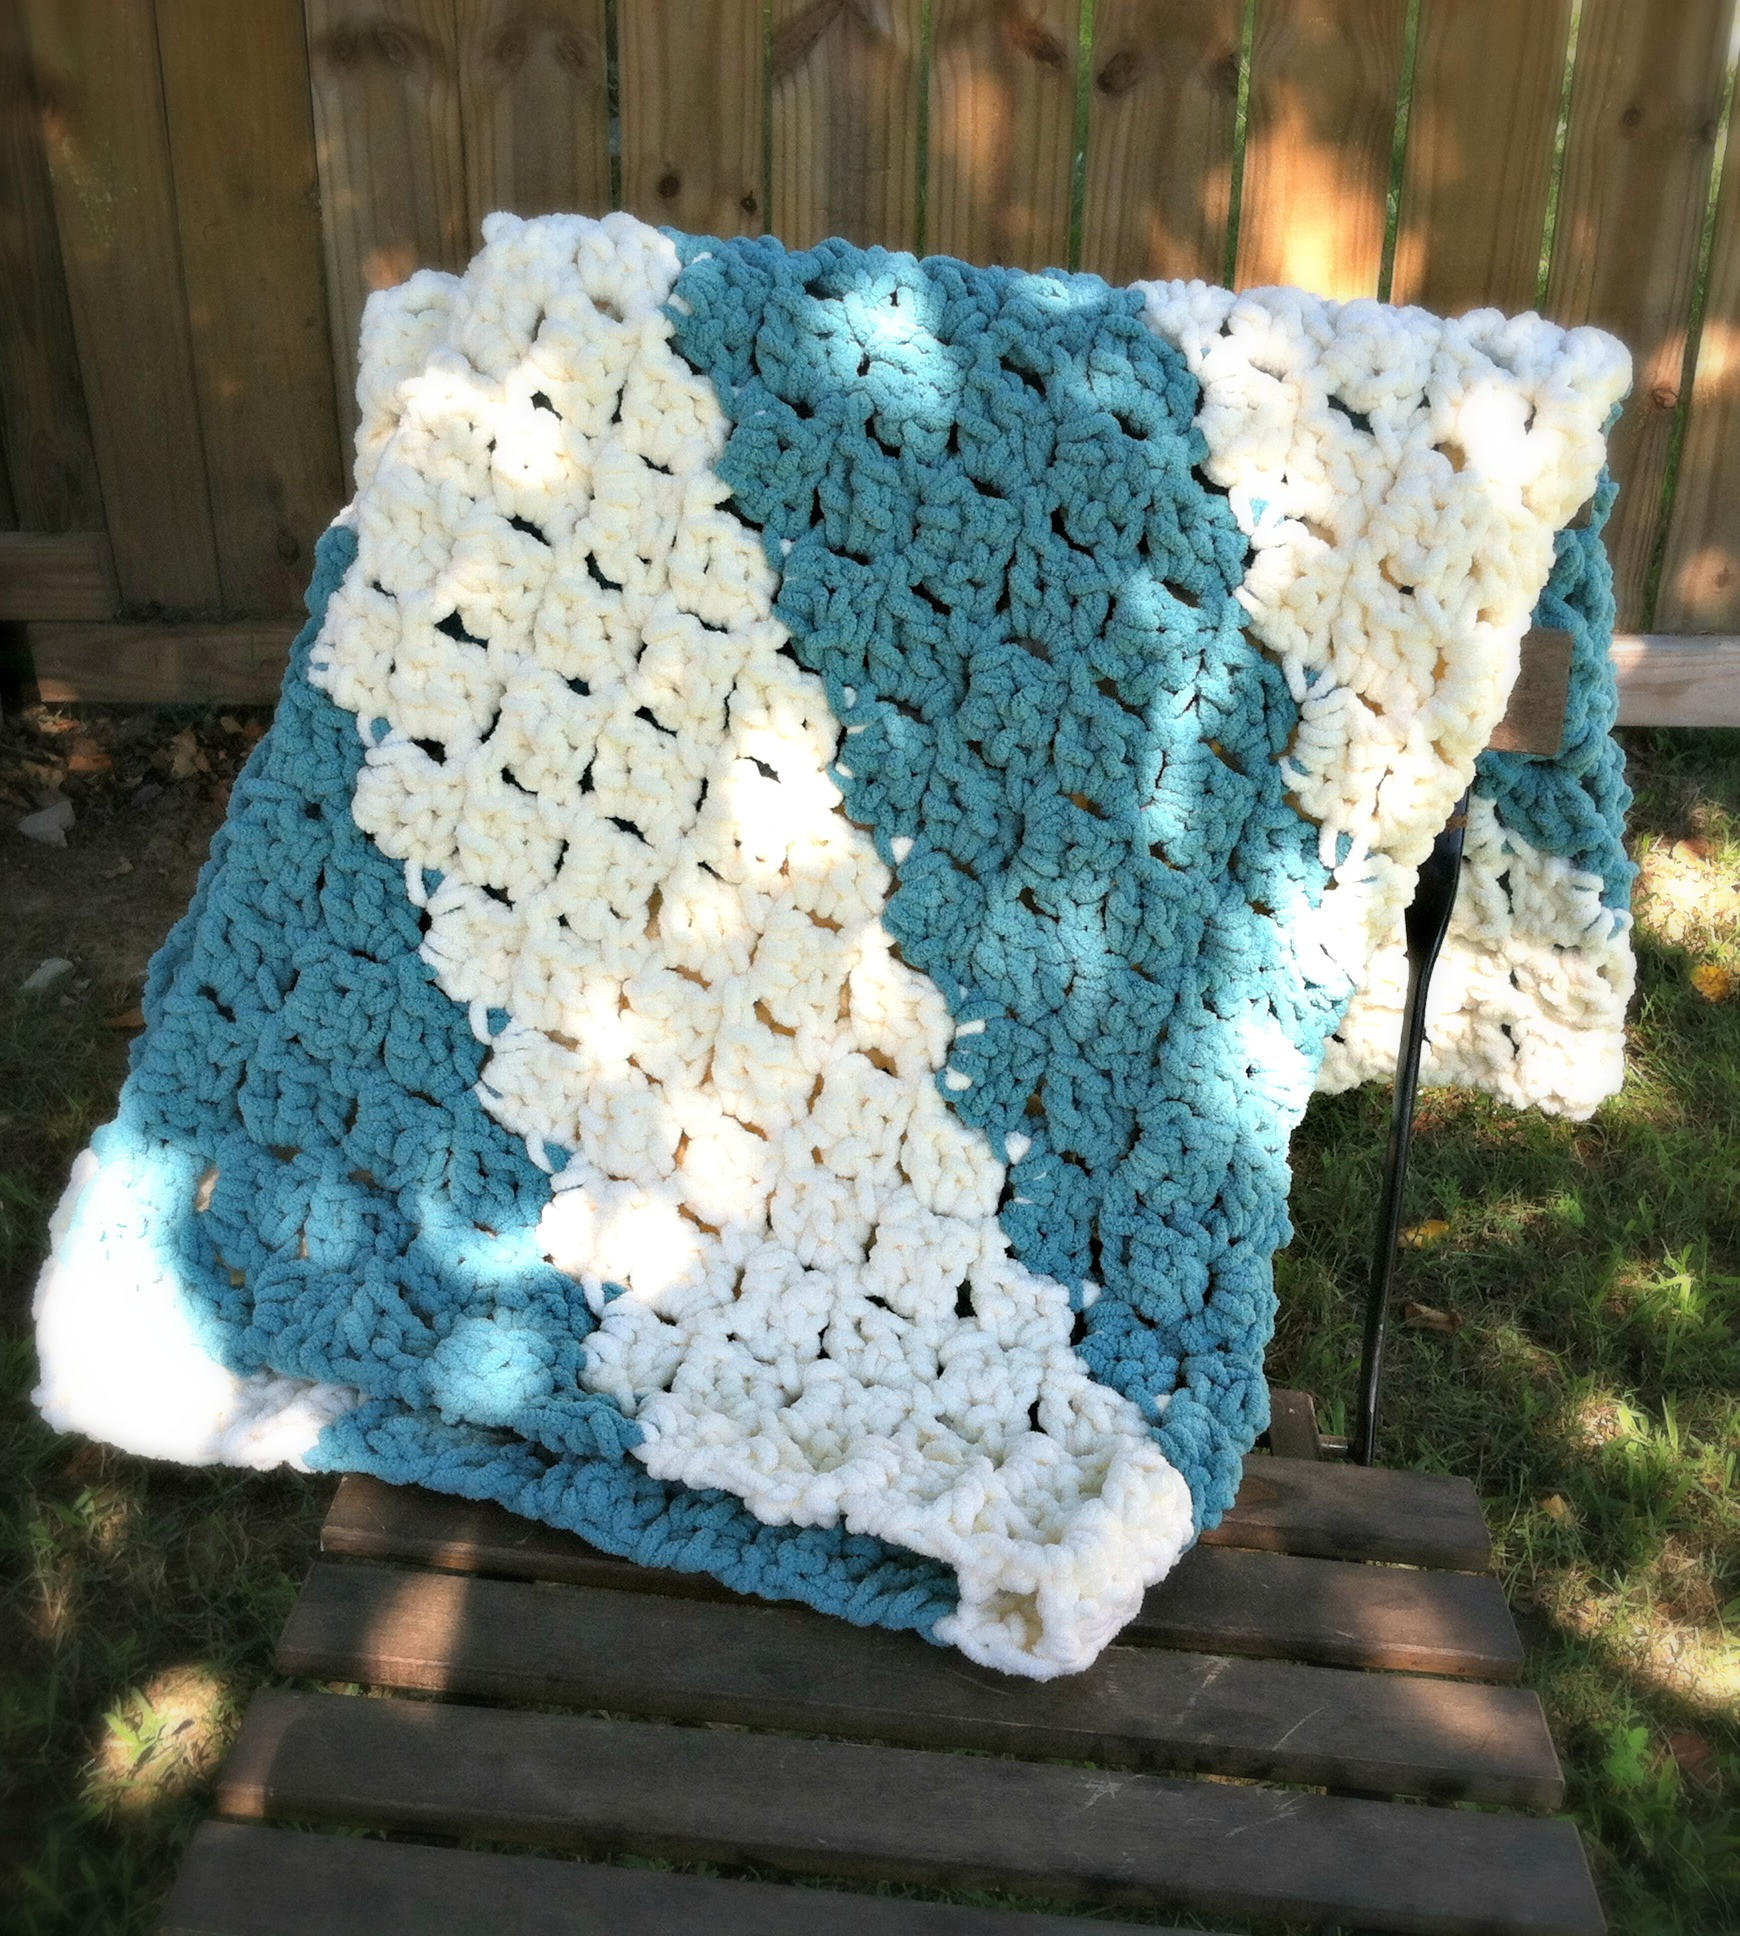 Best Of Quick and Easy Baby Blanket Free Crochet Pattern Easy Crochet Stitches for Blankets Of Great 41 Photos Easy Crochet Stitches for Blankets